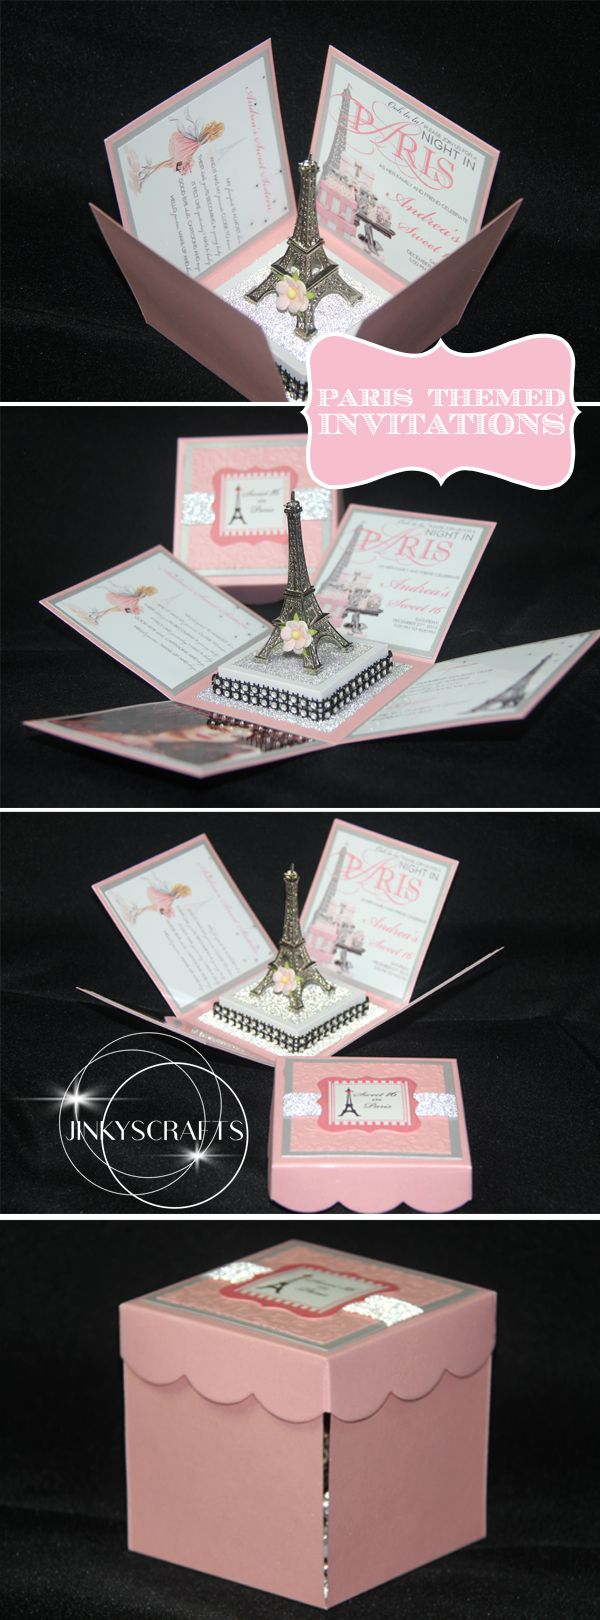 Unique Paris Themed Invitation for Paris Themed Sweet 16, Paris Themed Wedding, Paris Themed Bridal Shower, Paris Themed Quinceanera or any Night In Paris events. This is an exploding box pop up invitation with Eiffel Tower centerpiece. Completely customizable.